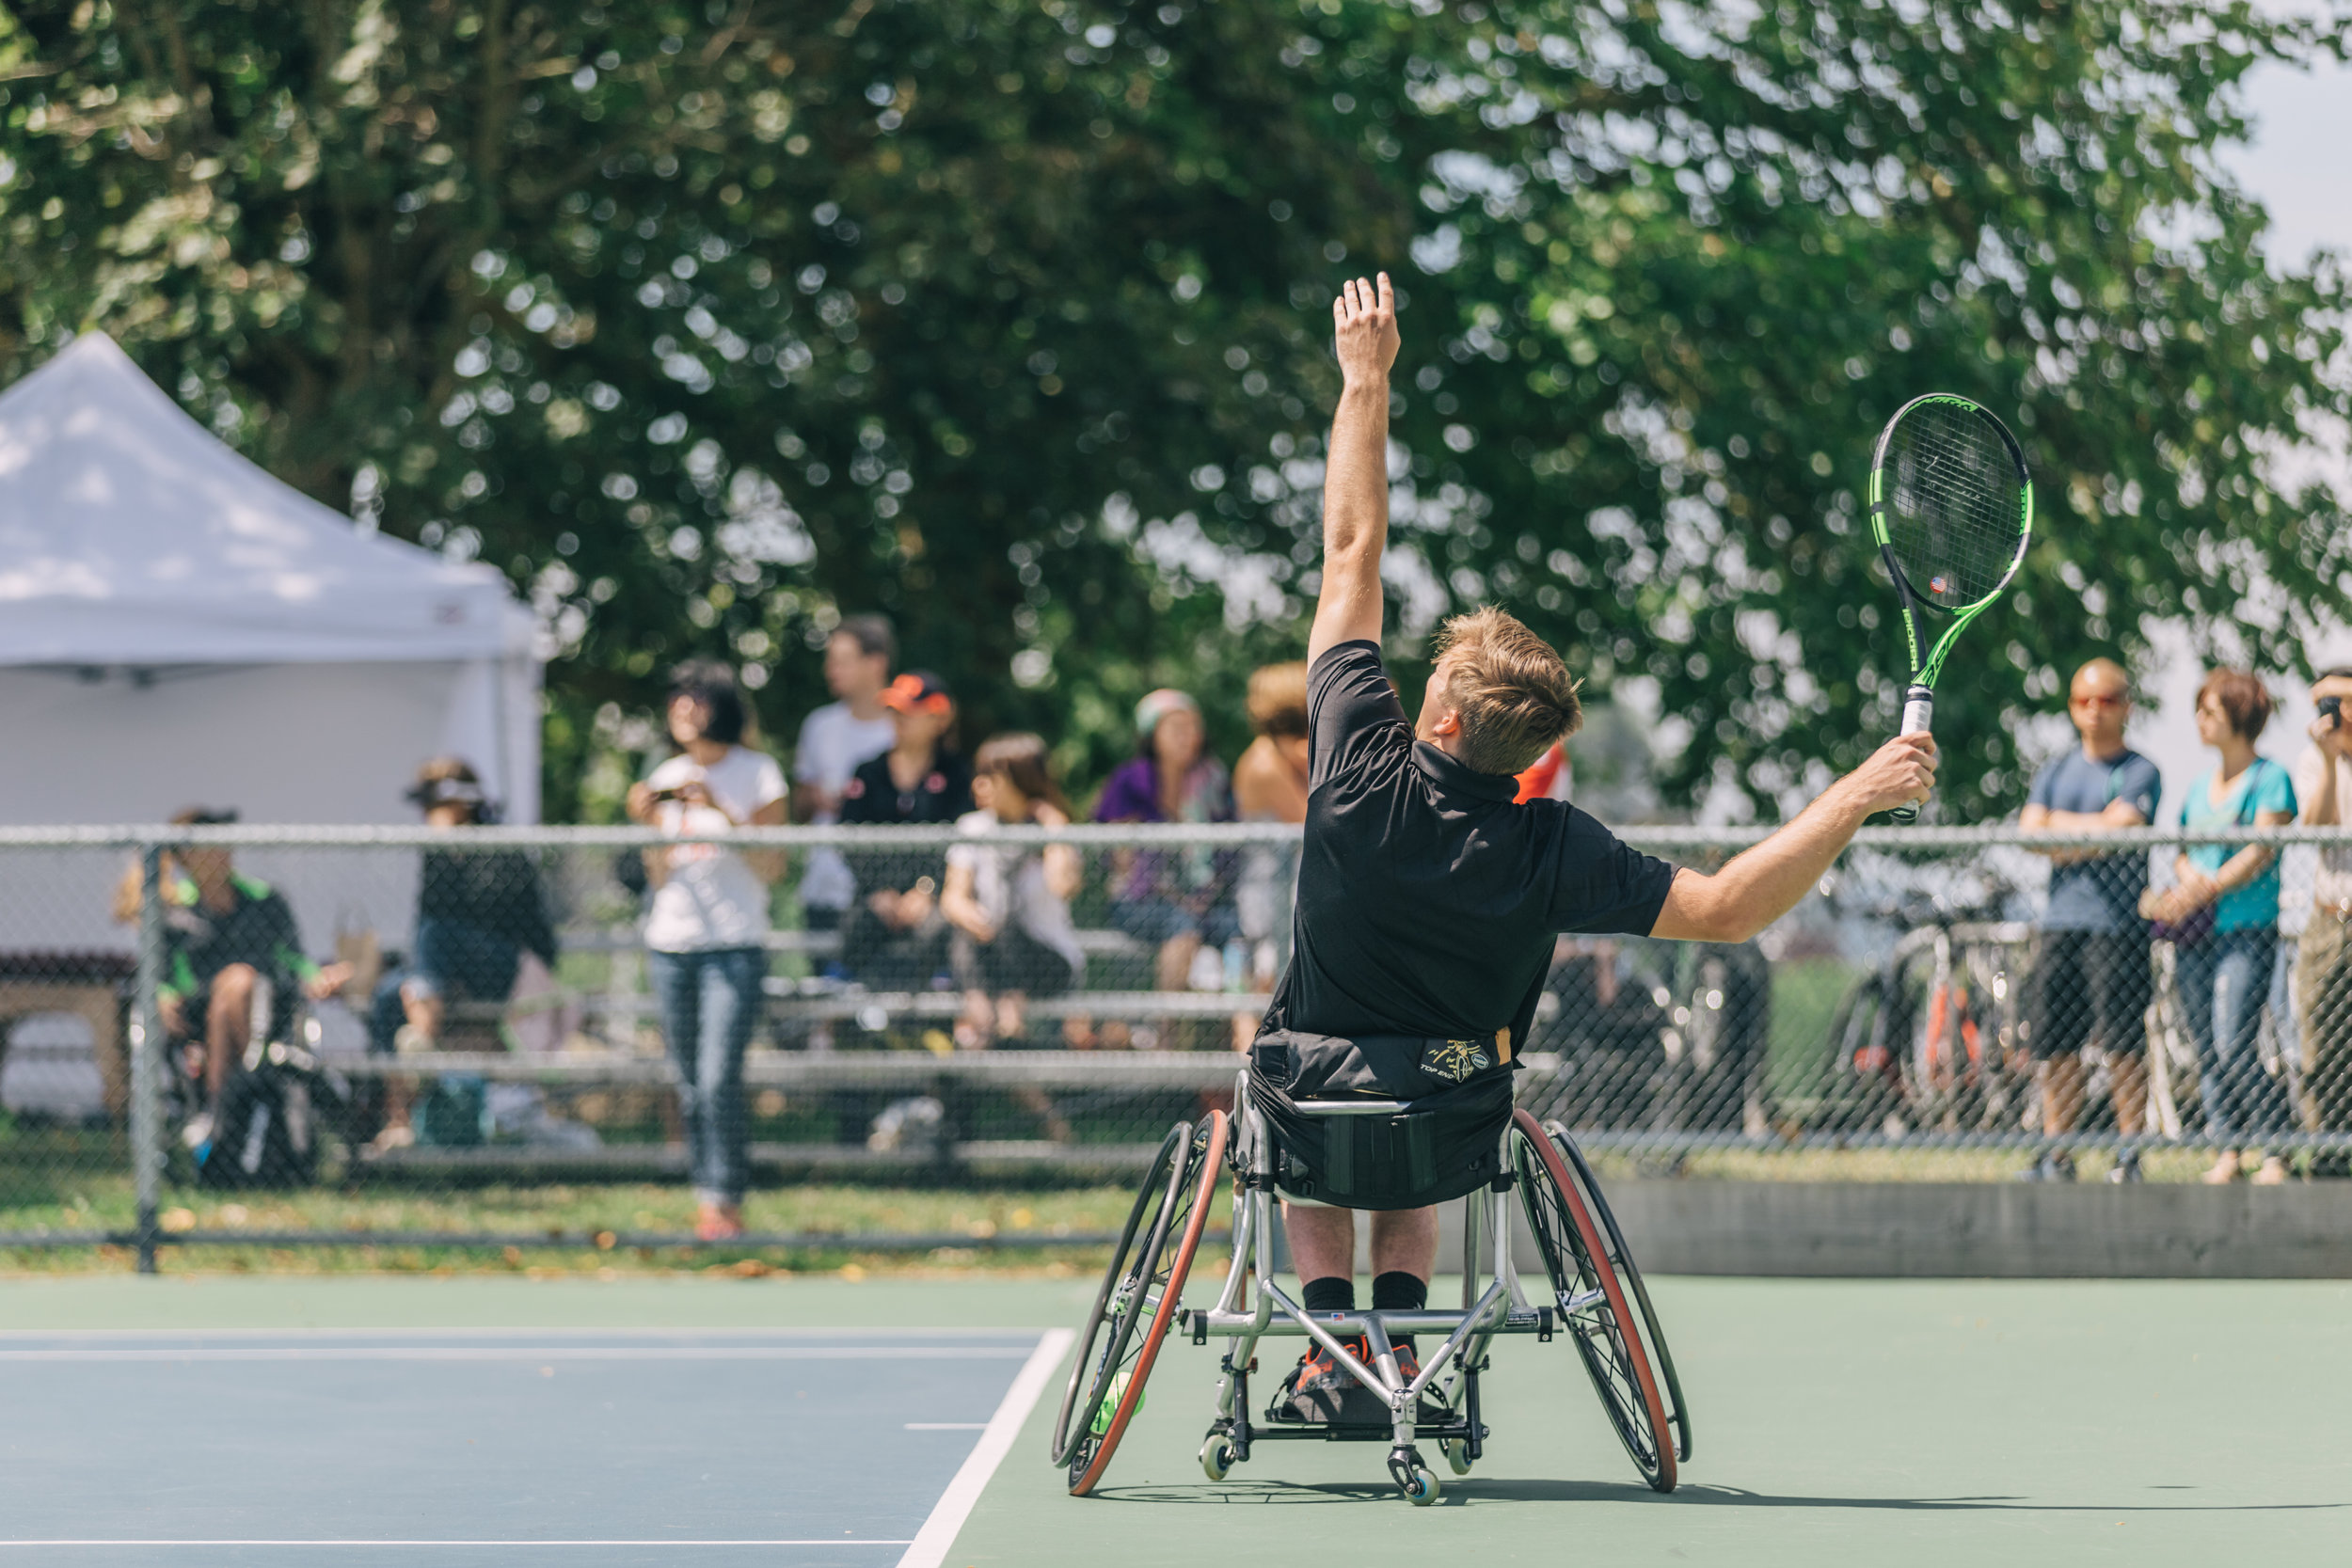 7.17.2016 - Wheelchair Tennis BC Men's Double's Finals - Edited (37 of 139).jpg